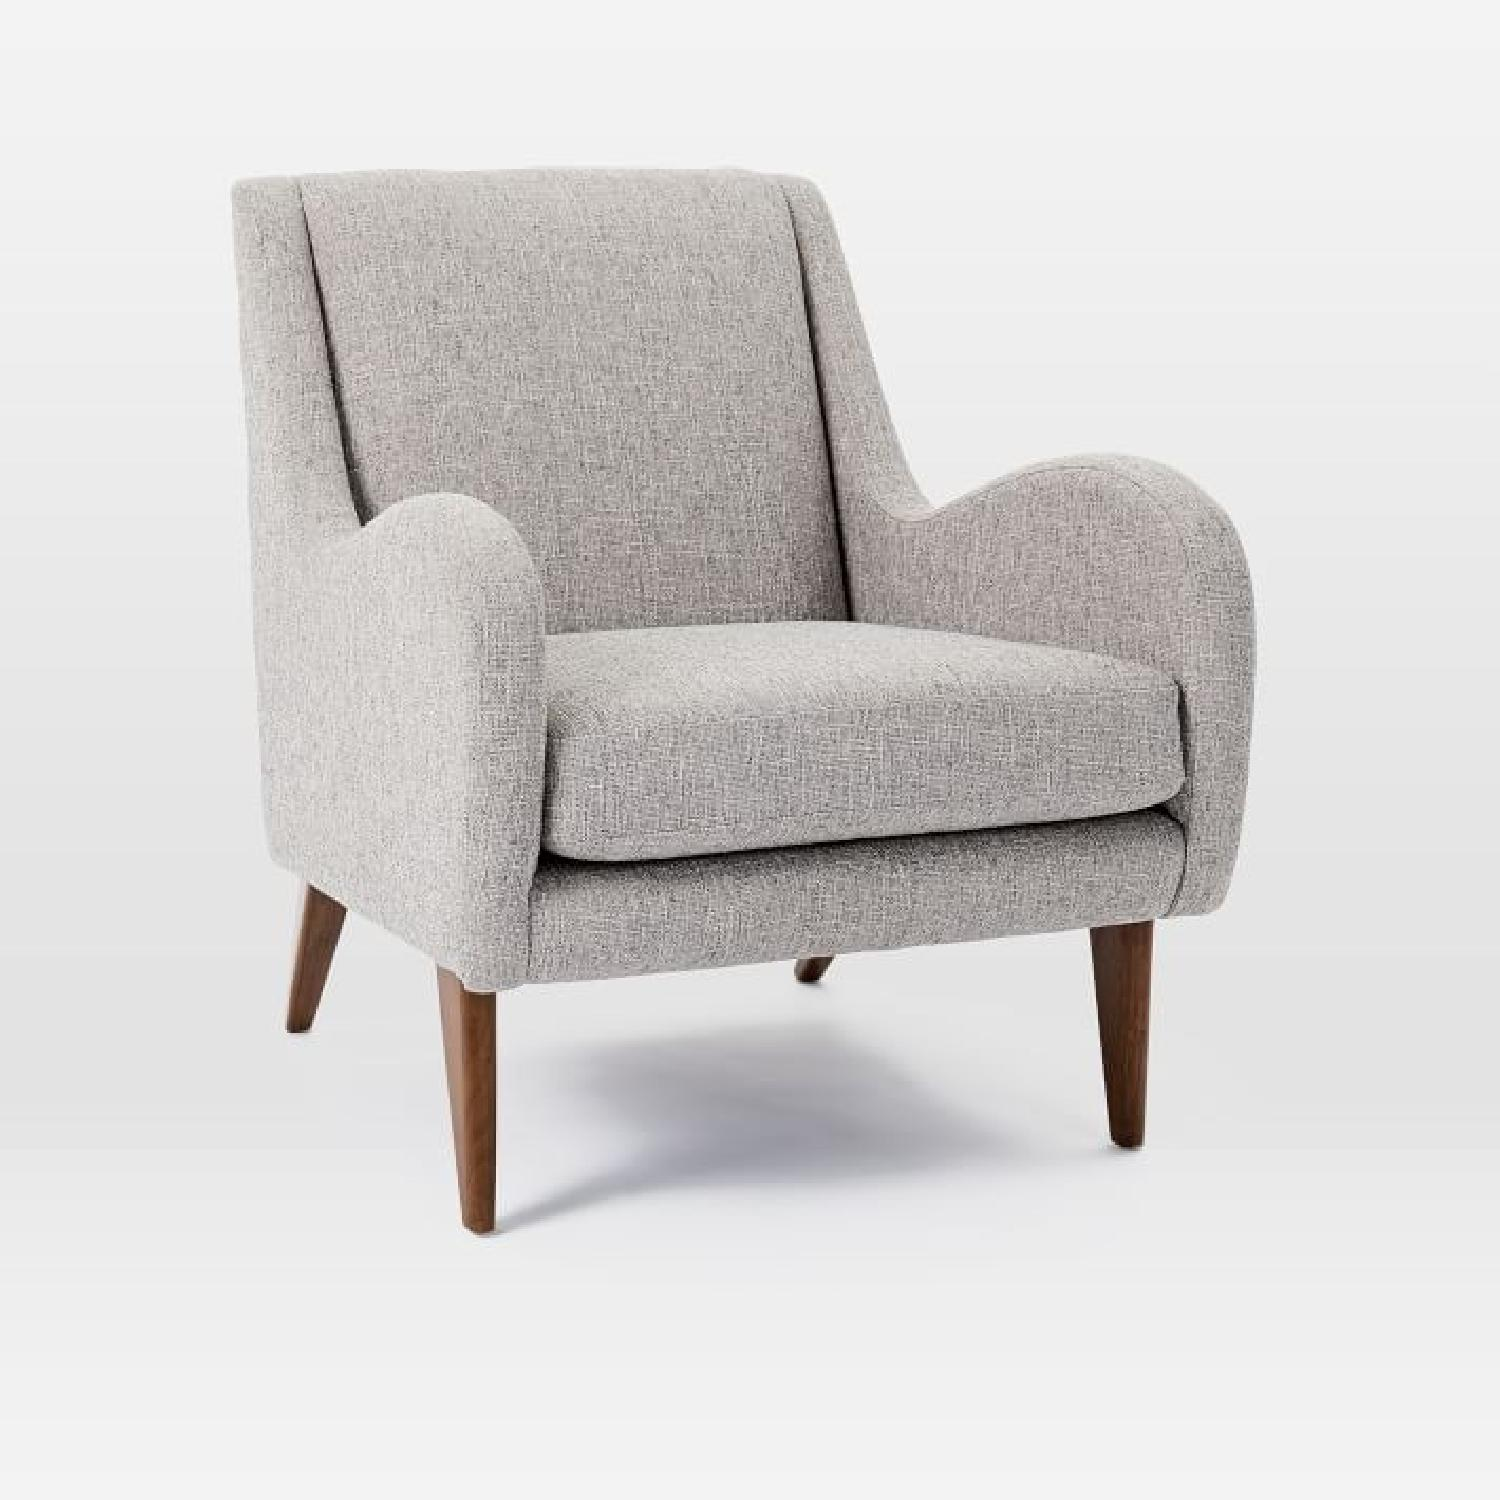 West Elm Sebastian Chair in Feather Gray - image-2